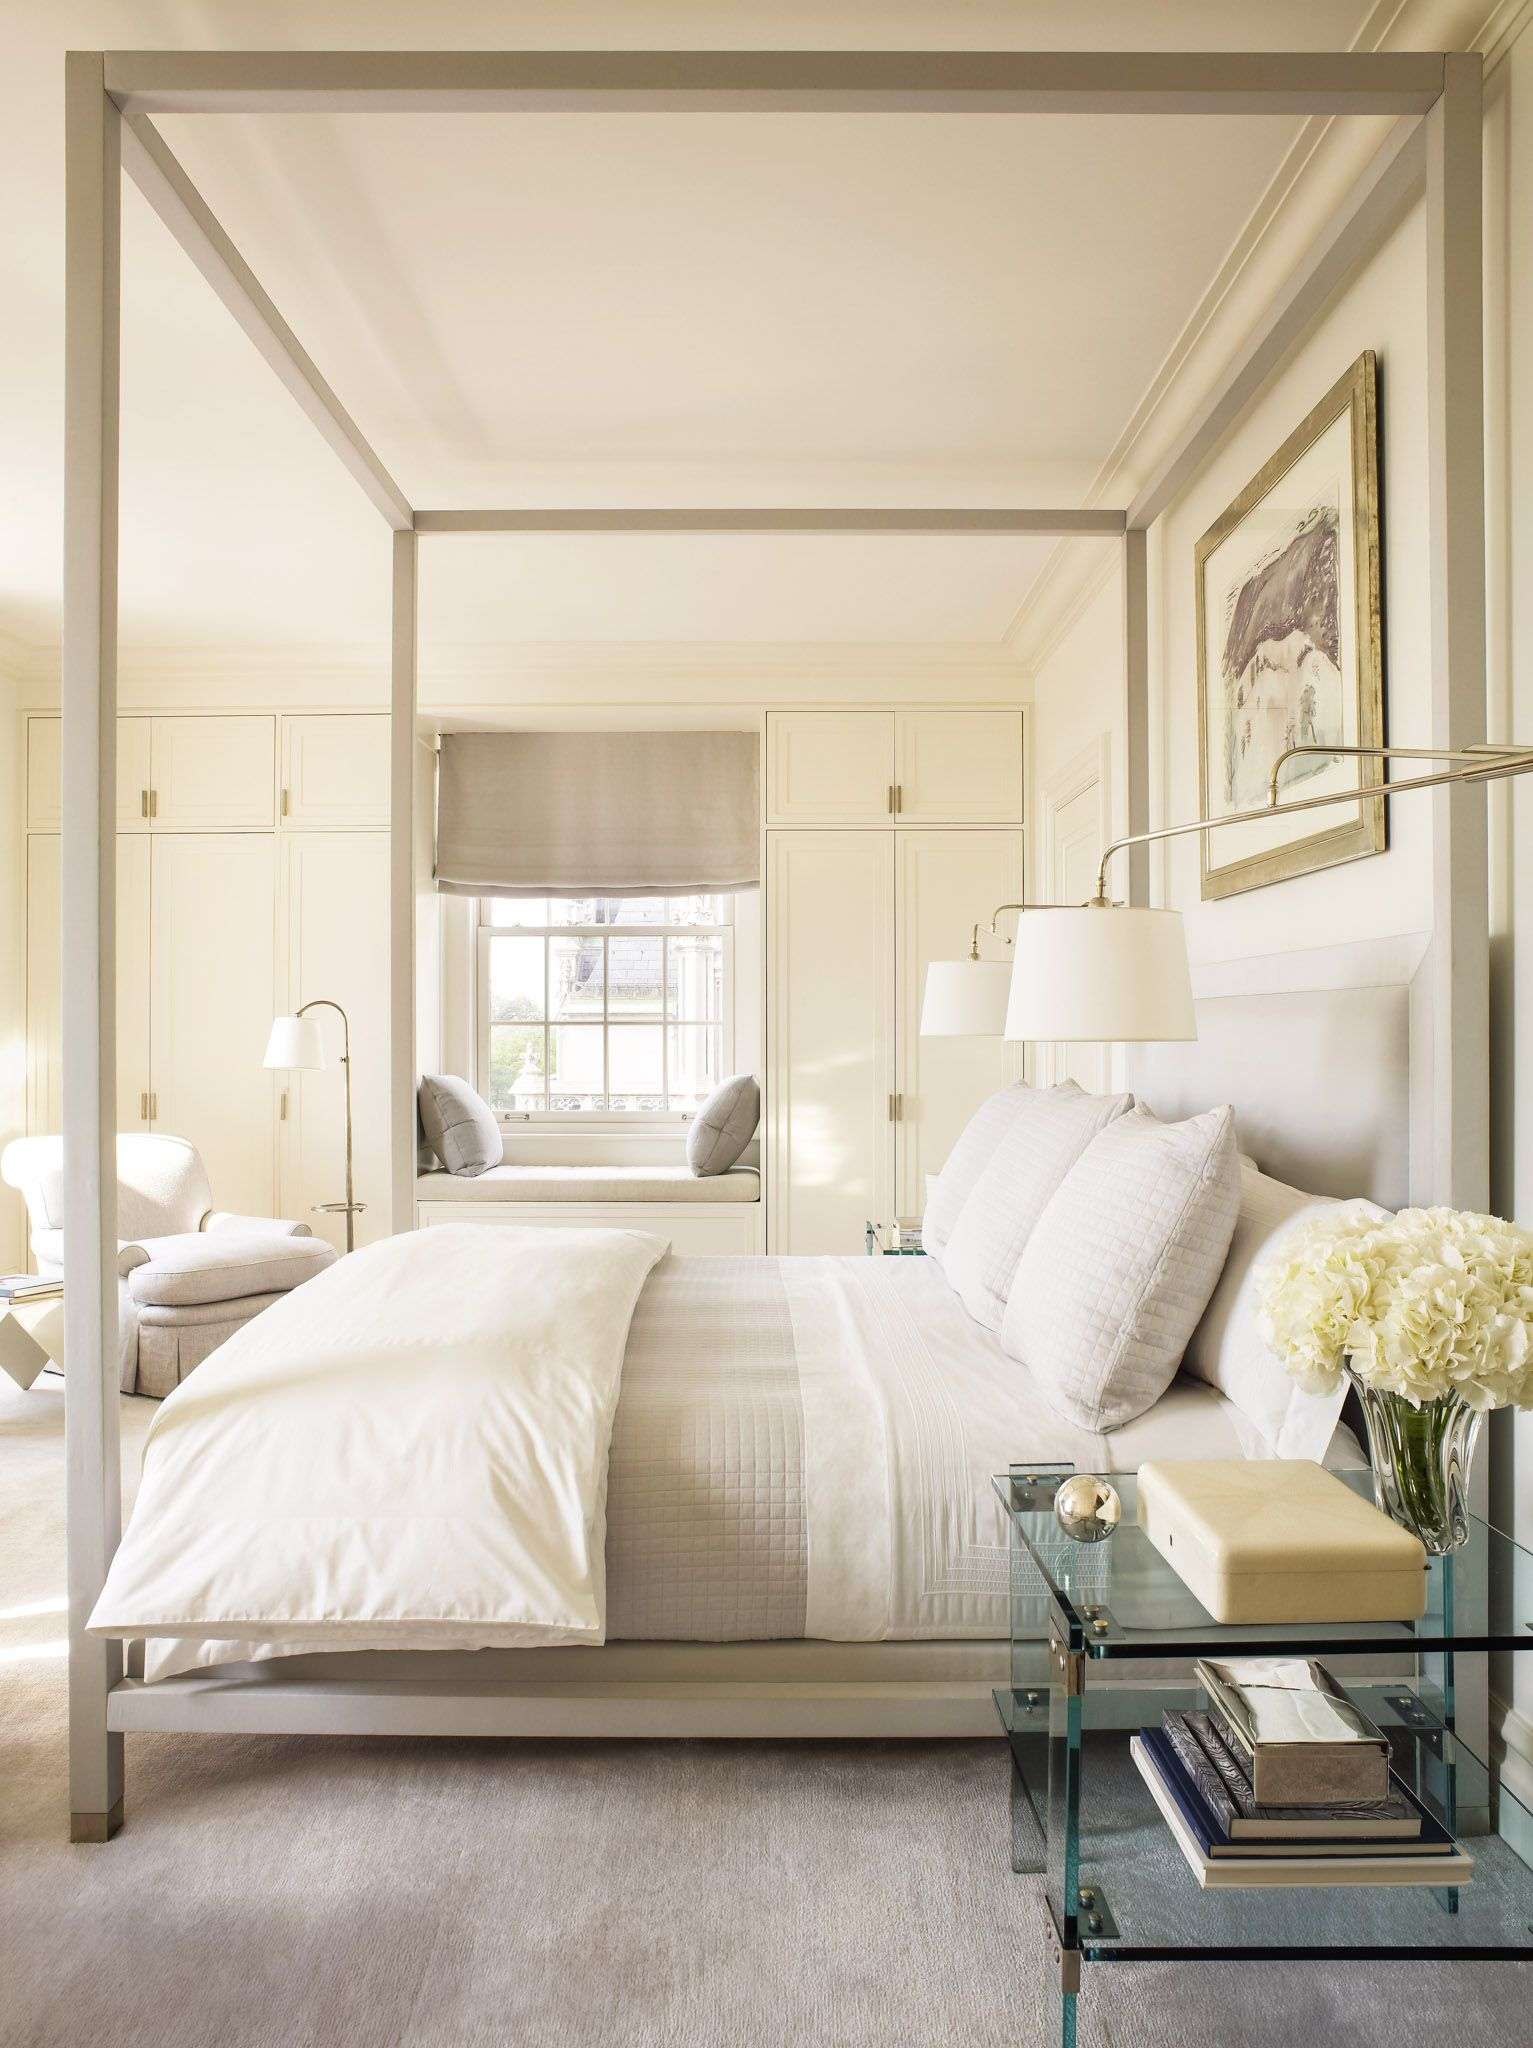 Elegant Peaceful Cream Master Bedroom With Black Out Window Shades.